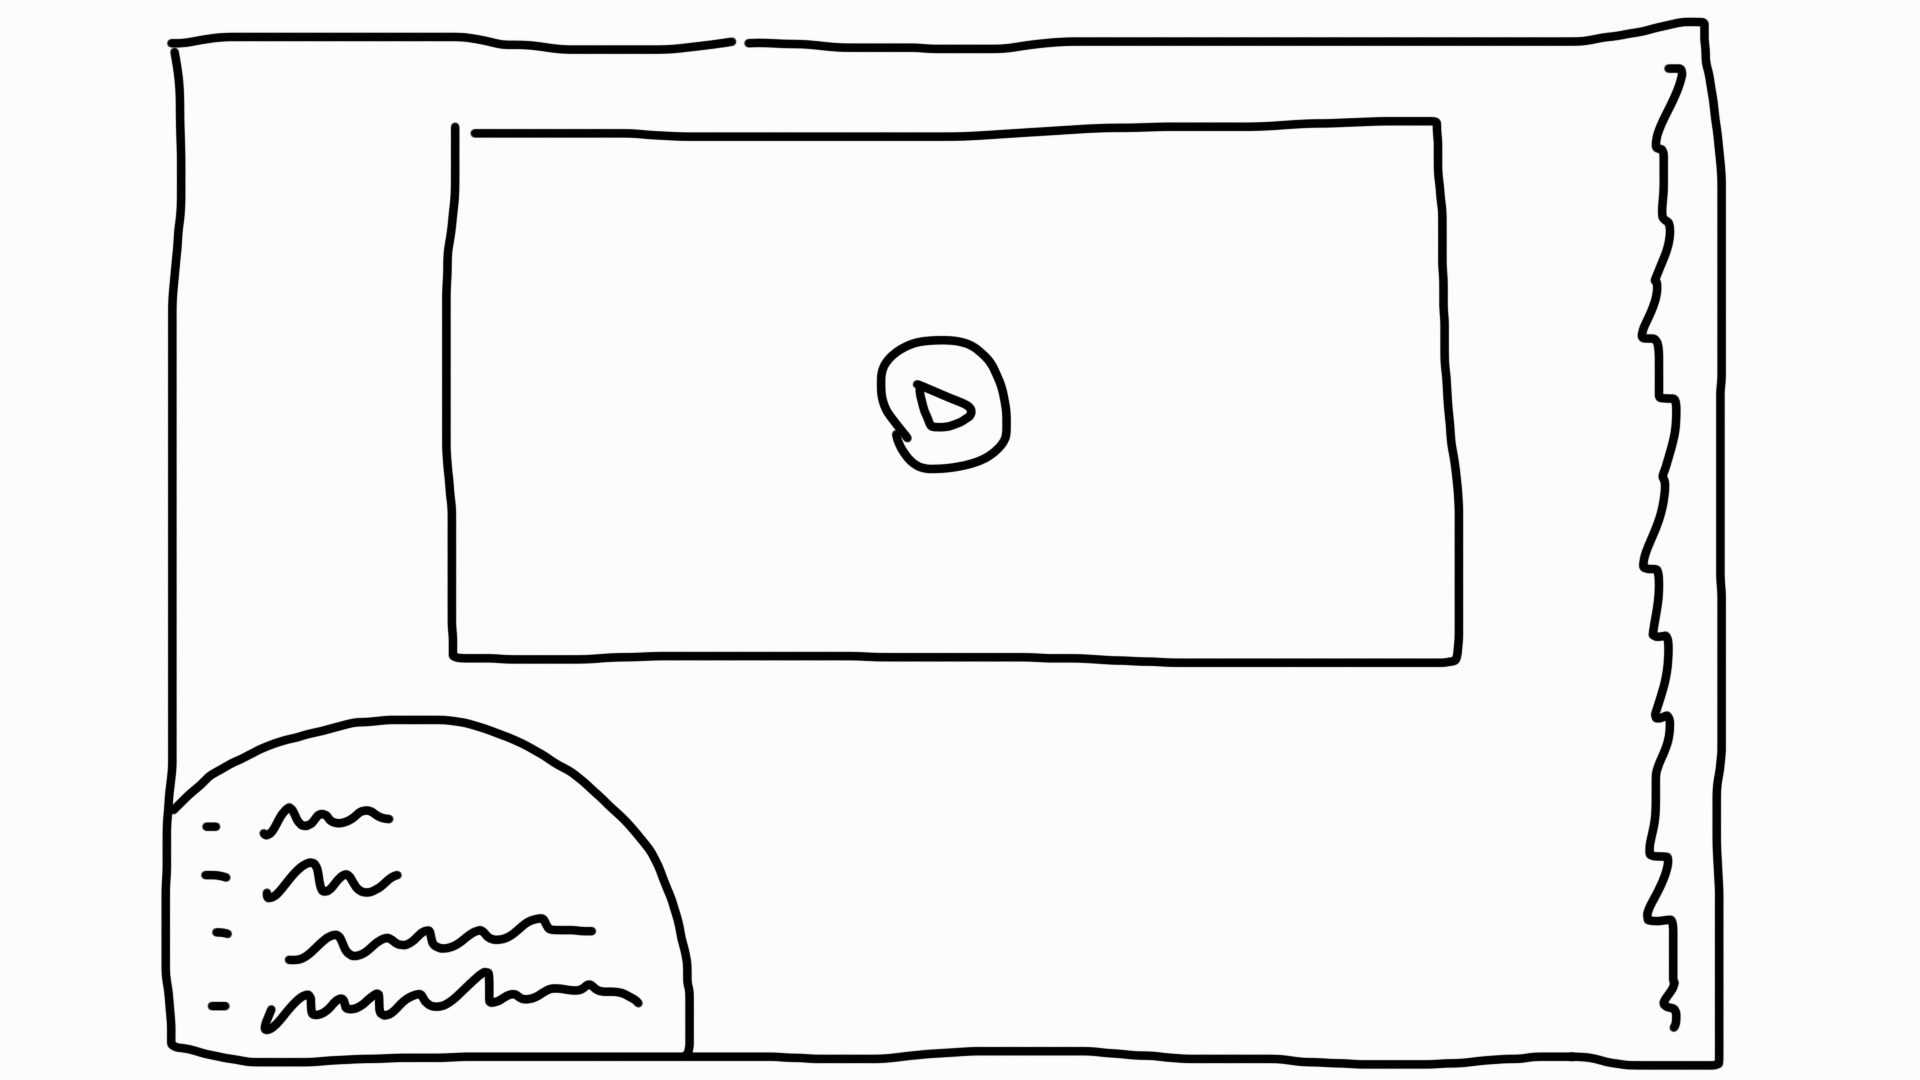 2015-05-26 20.33.38.png